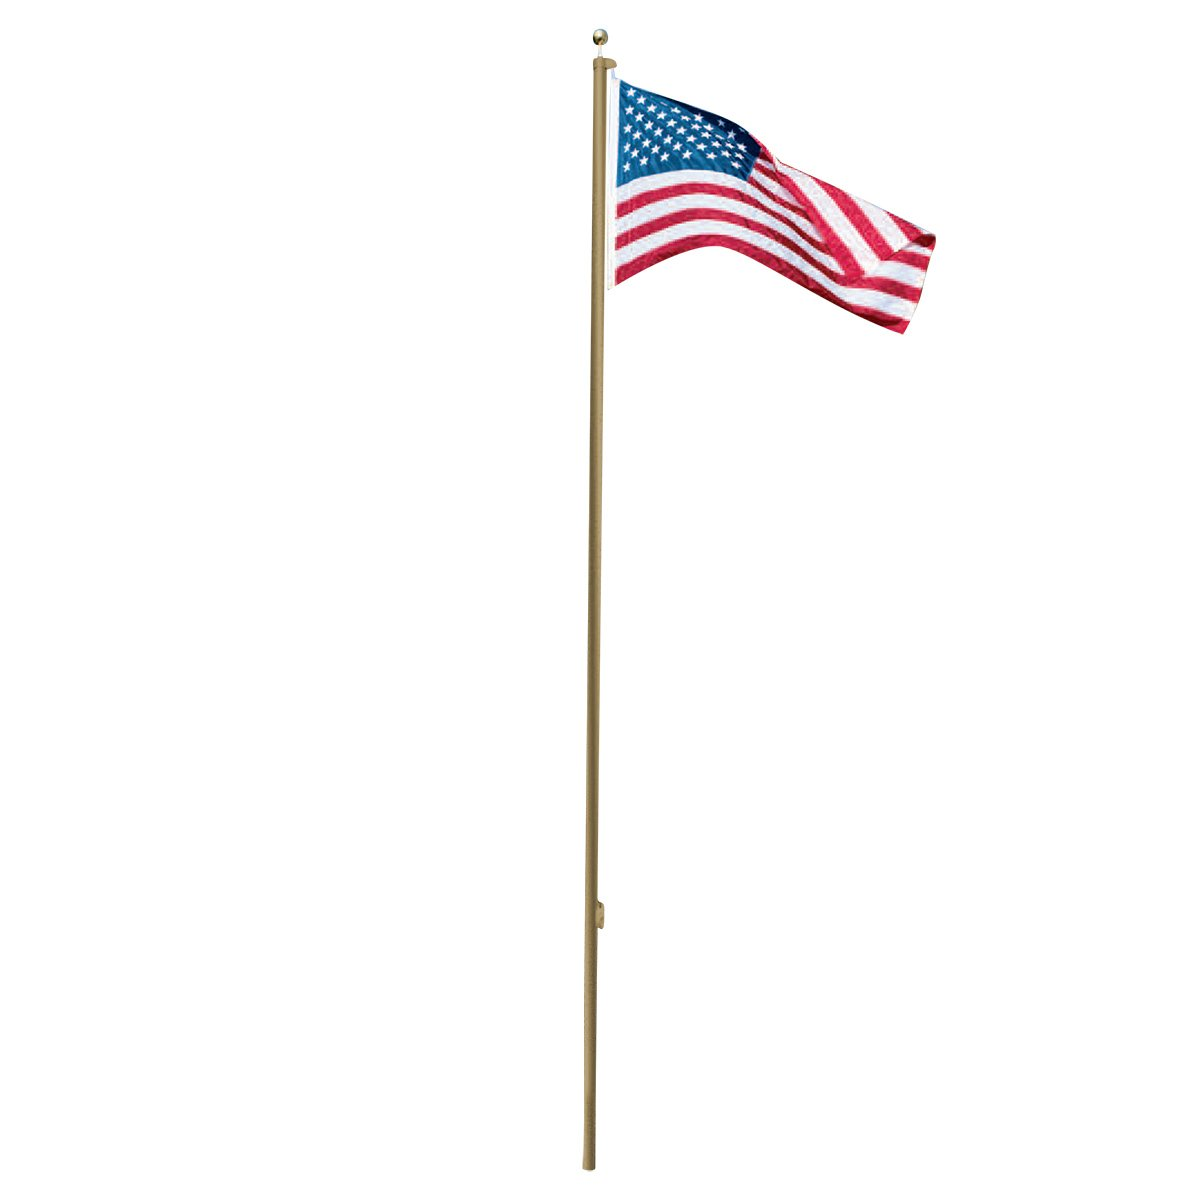 Super Tough 25ft Outdoor Flagpole - 4'x6' USA Valley Forge Flag (Bronze)